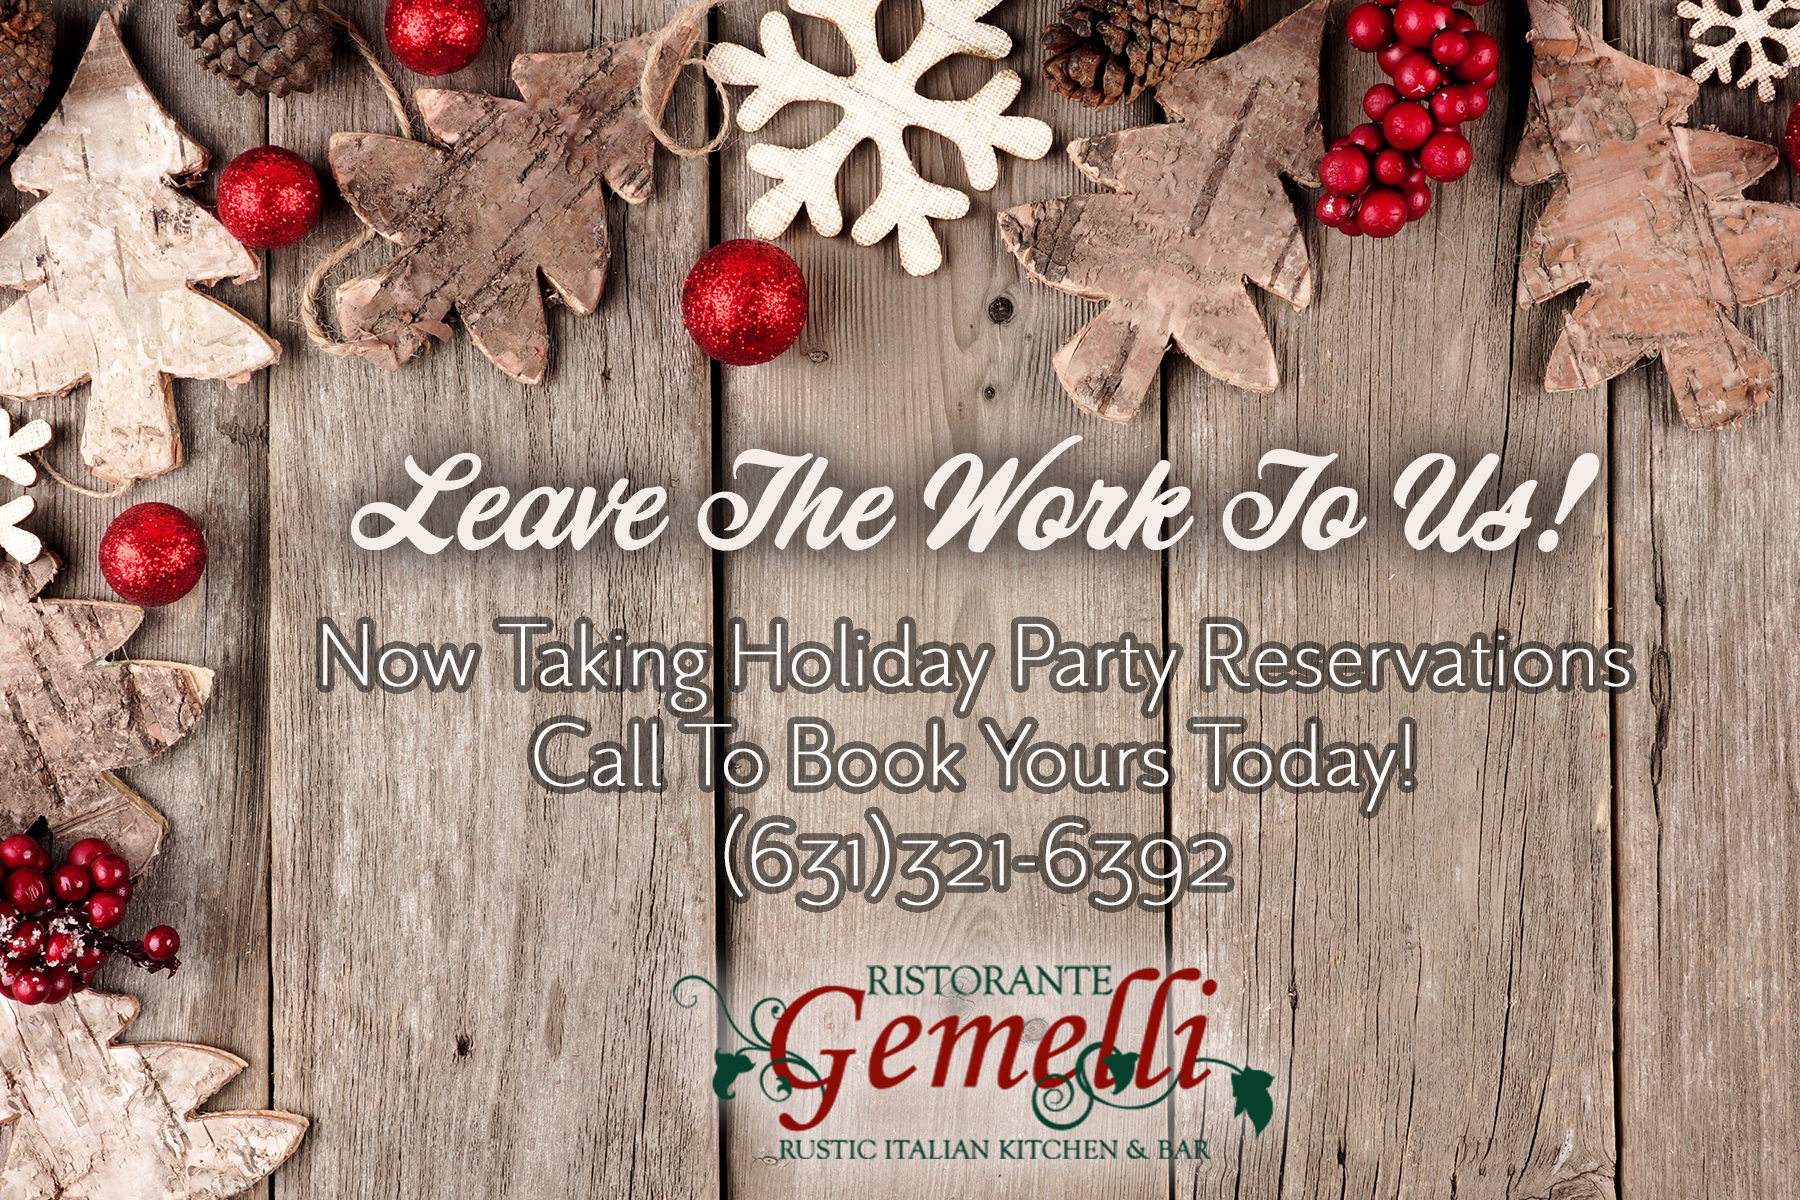 Leave The Work To Us! Now Taking Holiday Party Reservations | Call To Book Yours Today!